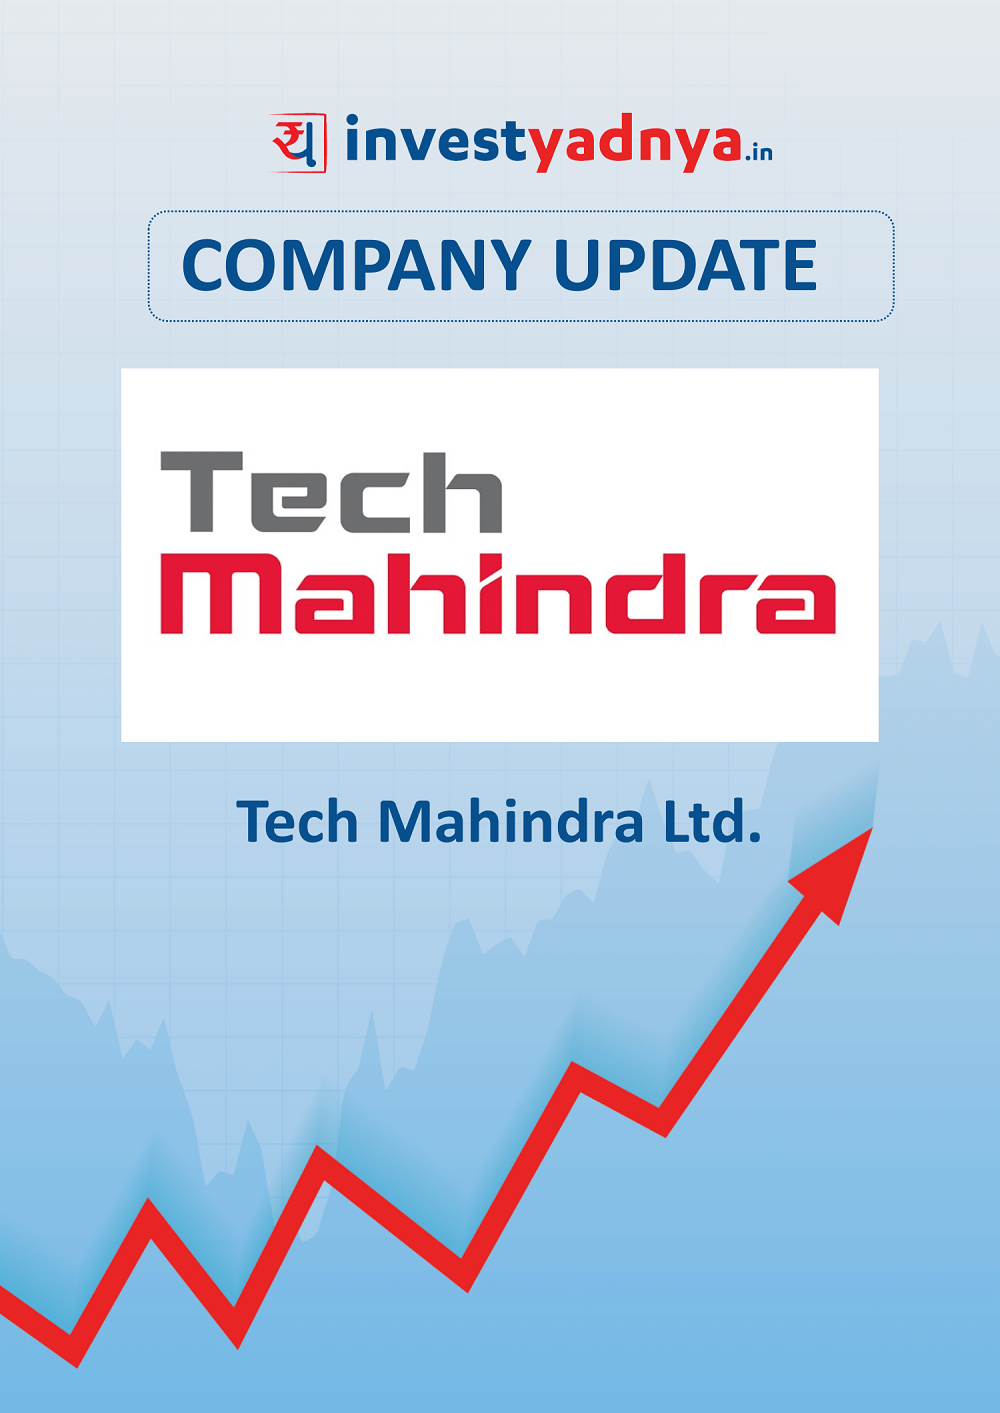 Tech Mahindra Ltd. is a Short and sweet analysis of the company which contains a brief overview of the company both from a qualitative and financial perspective. Date of update - 31st July 2019.